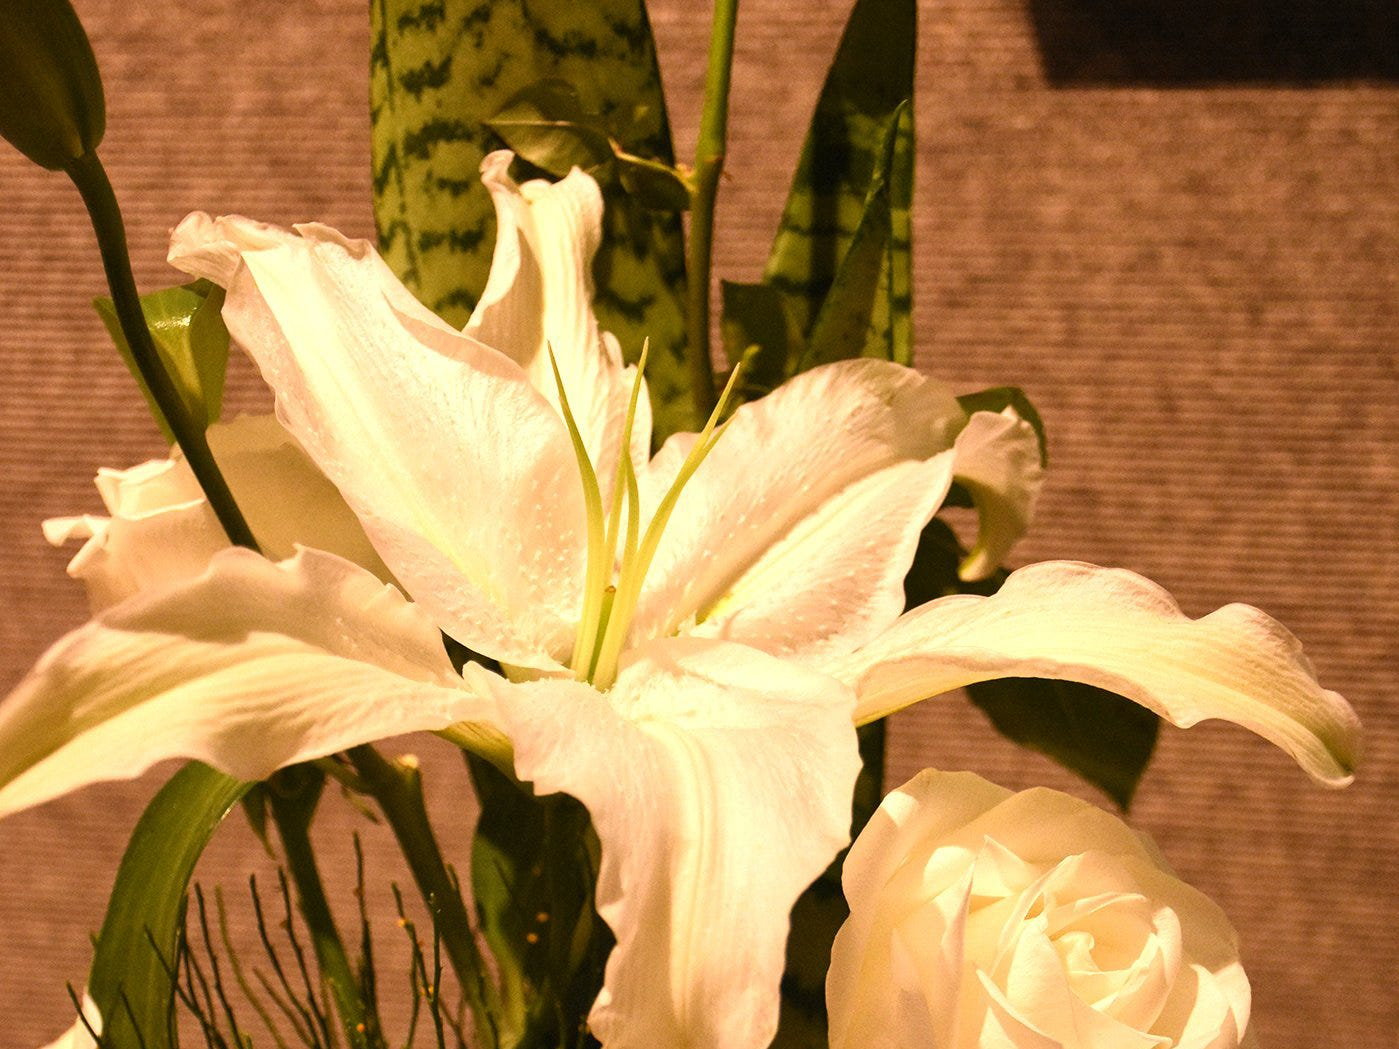 These white lilies and roses make up a line design. The Calusa Garden Club Gardening Expo at Marco Island Center for the Arts on Saturday displayed beautiful arrangements and showed people how to create their own.